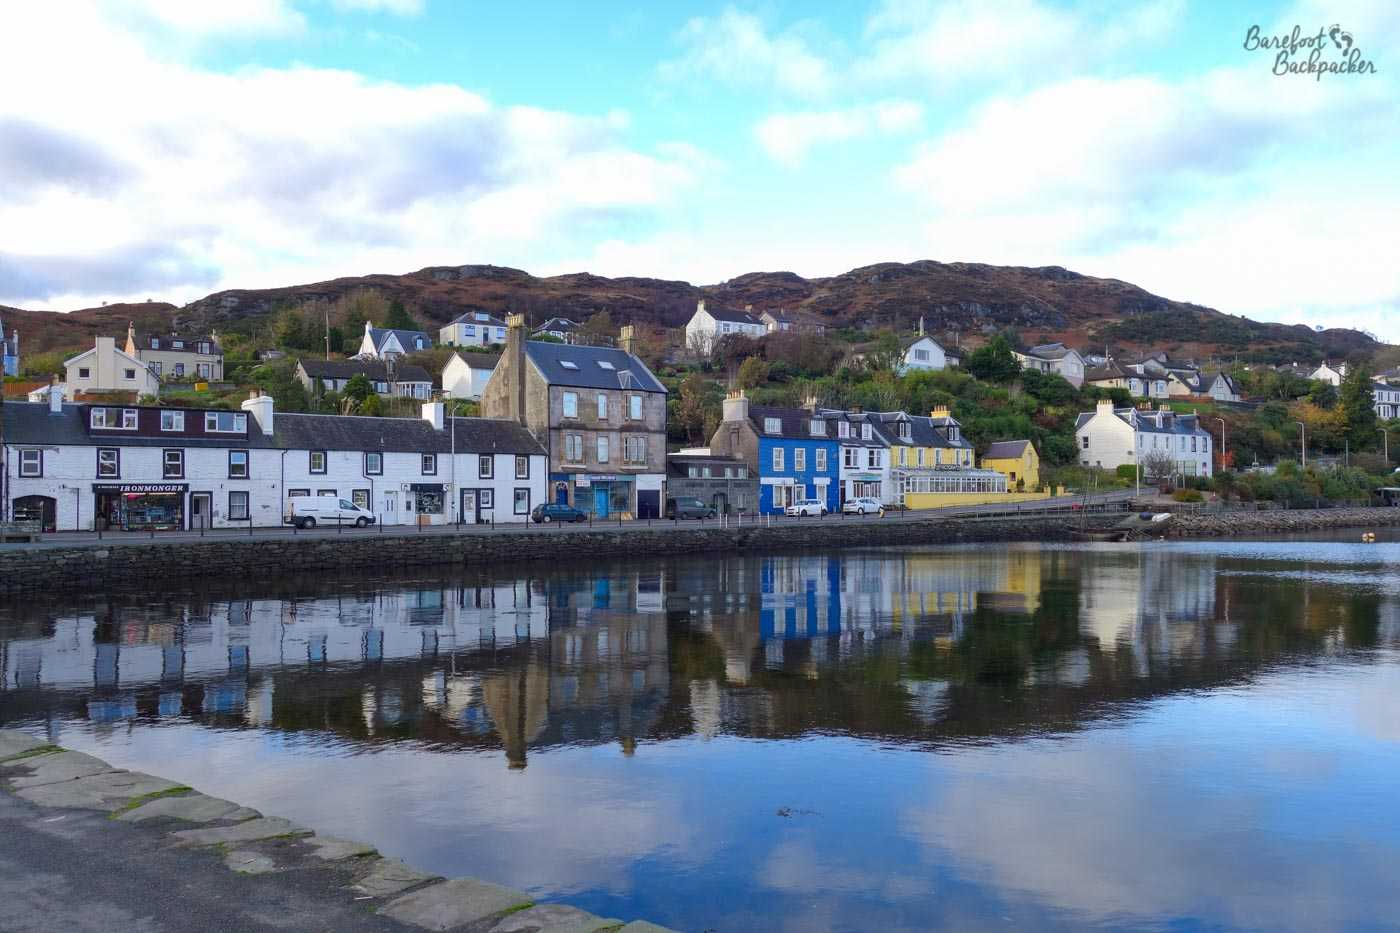 Colourful buildings at the edge of the harbour at Tarbert. Behind them the land rises up a hill range. The reflection of the buildings is visible in the slightly rippled but otherwise flat water.